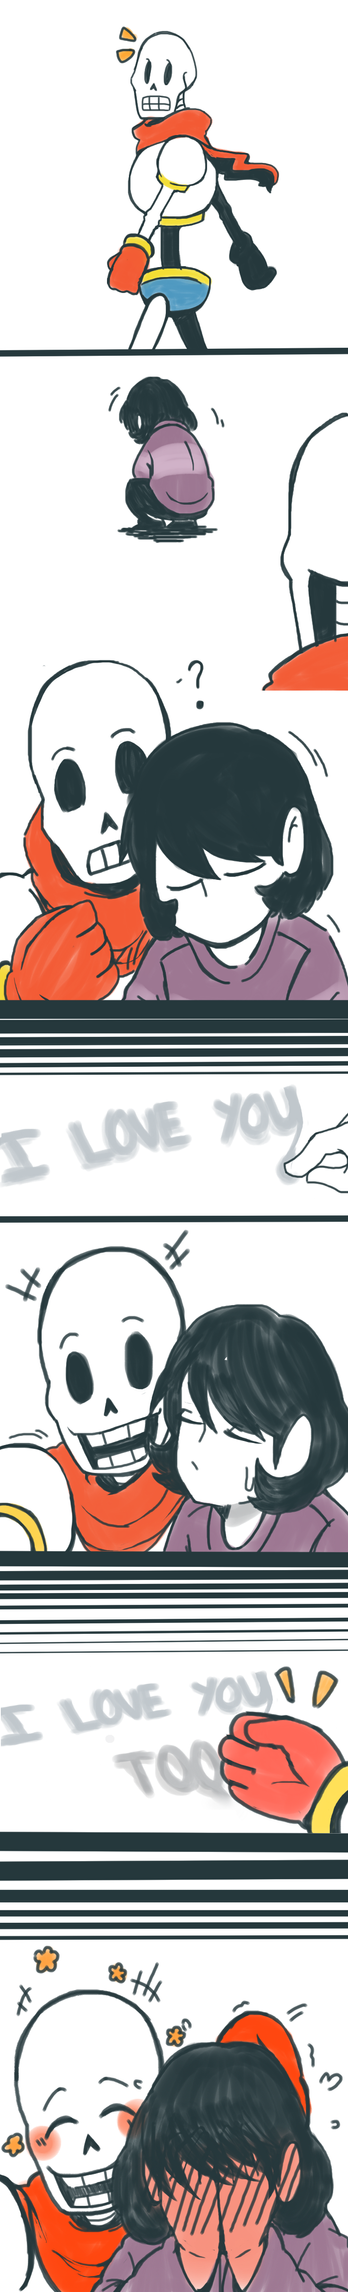 [Undertale] Exchanging Feelings by wolfifi